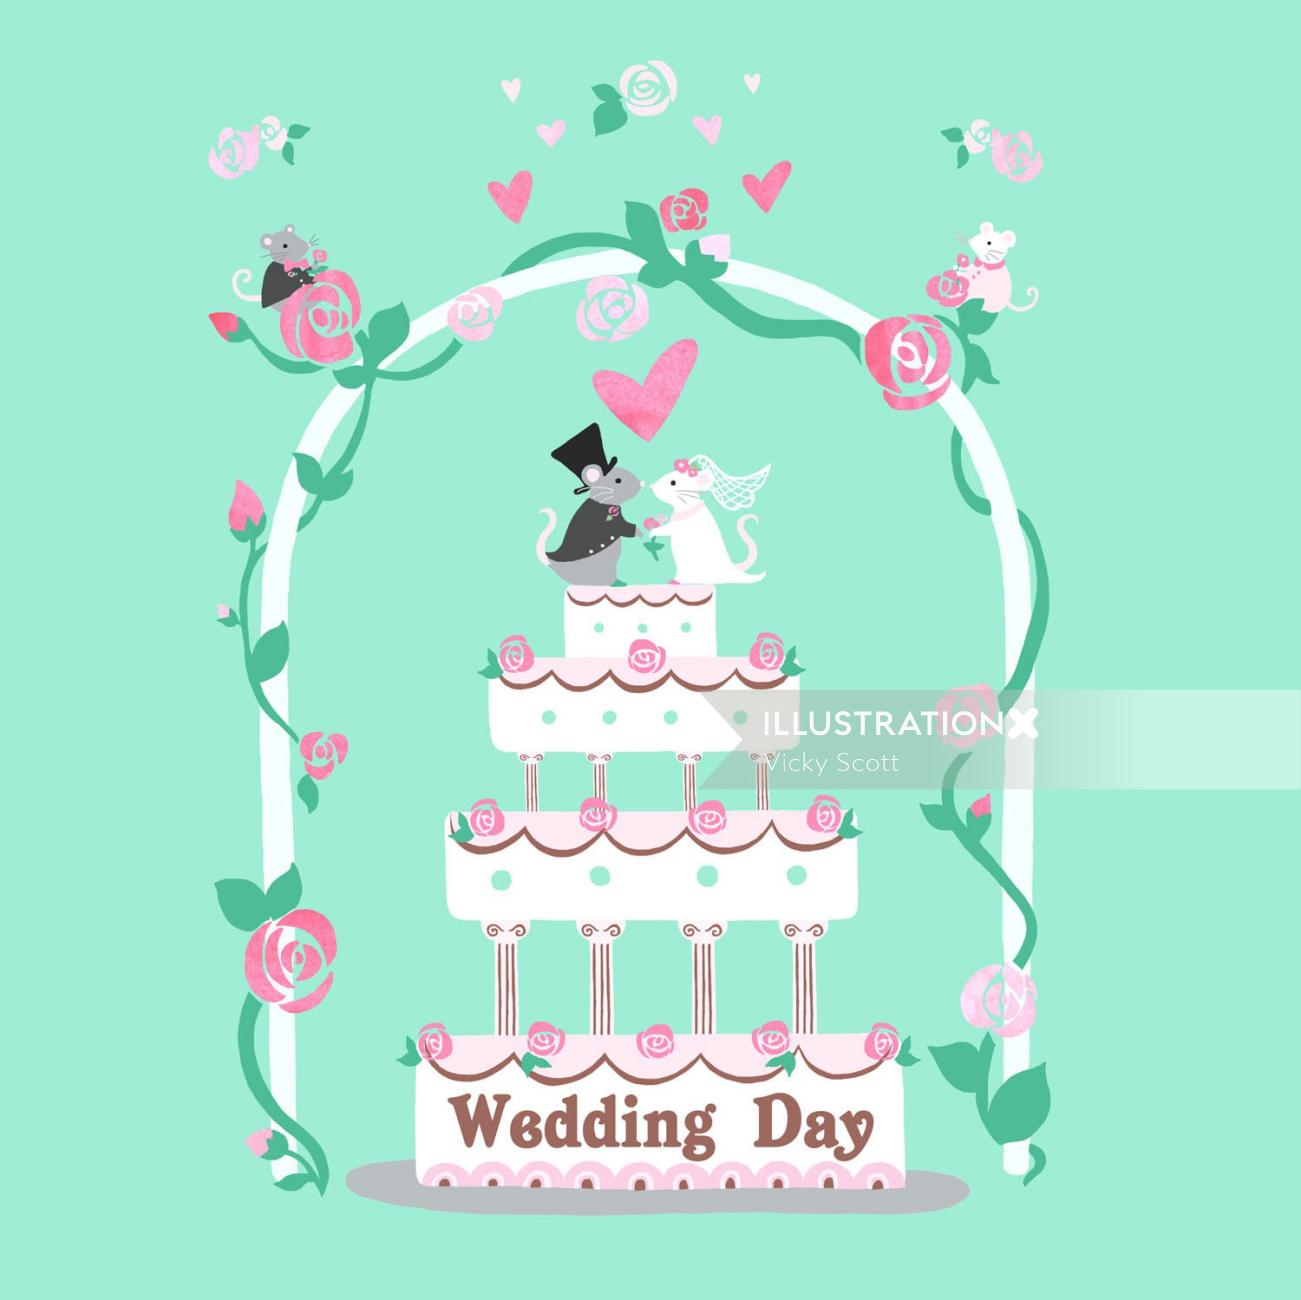 wedding, mice, wedding cake, love, mouse, animals in love, roses,